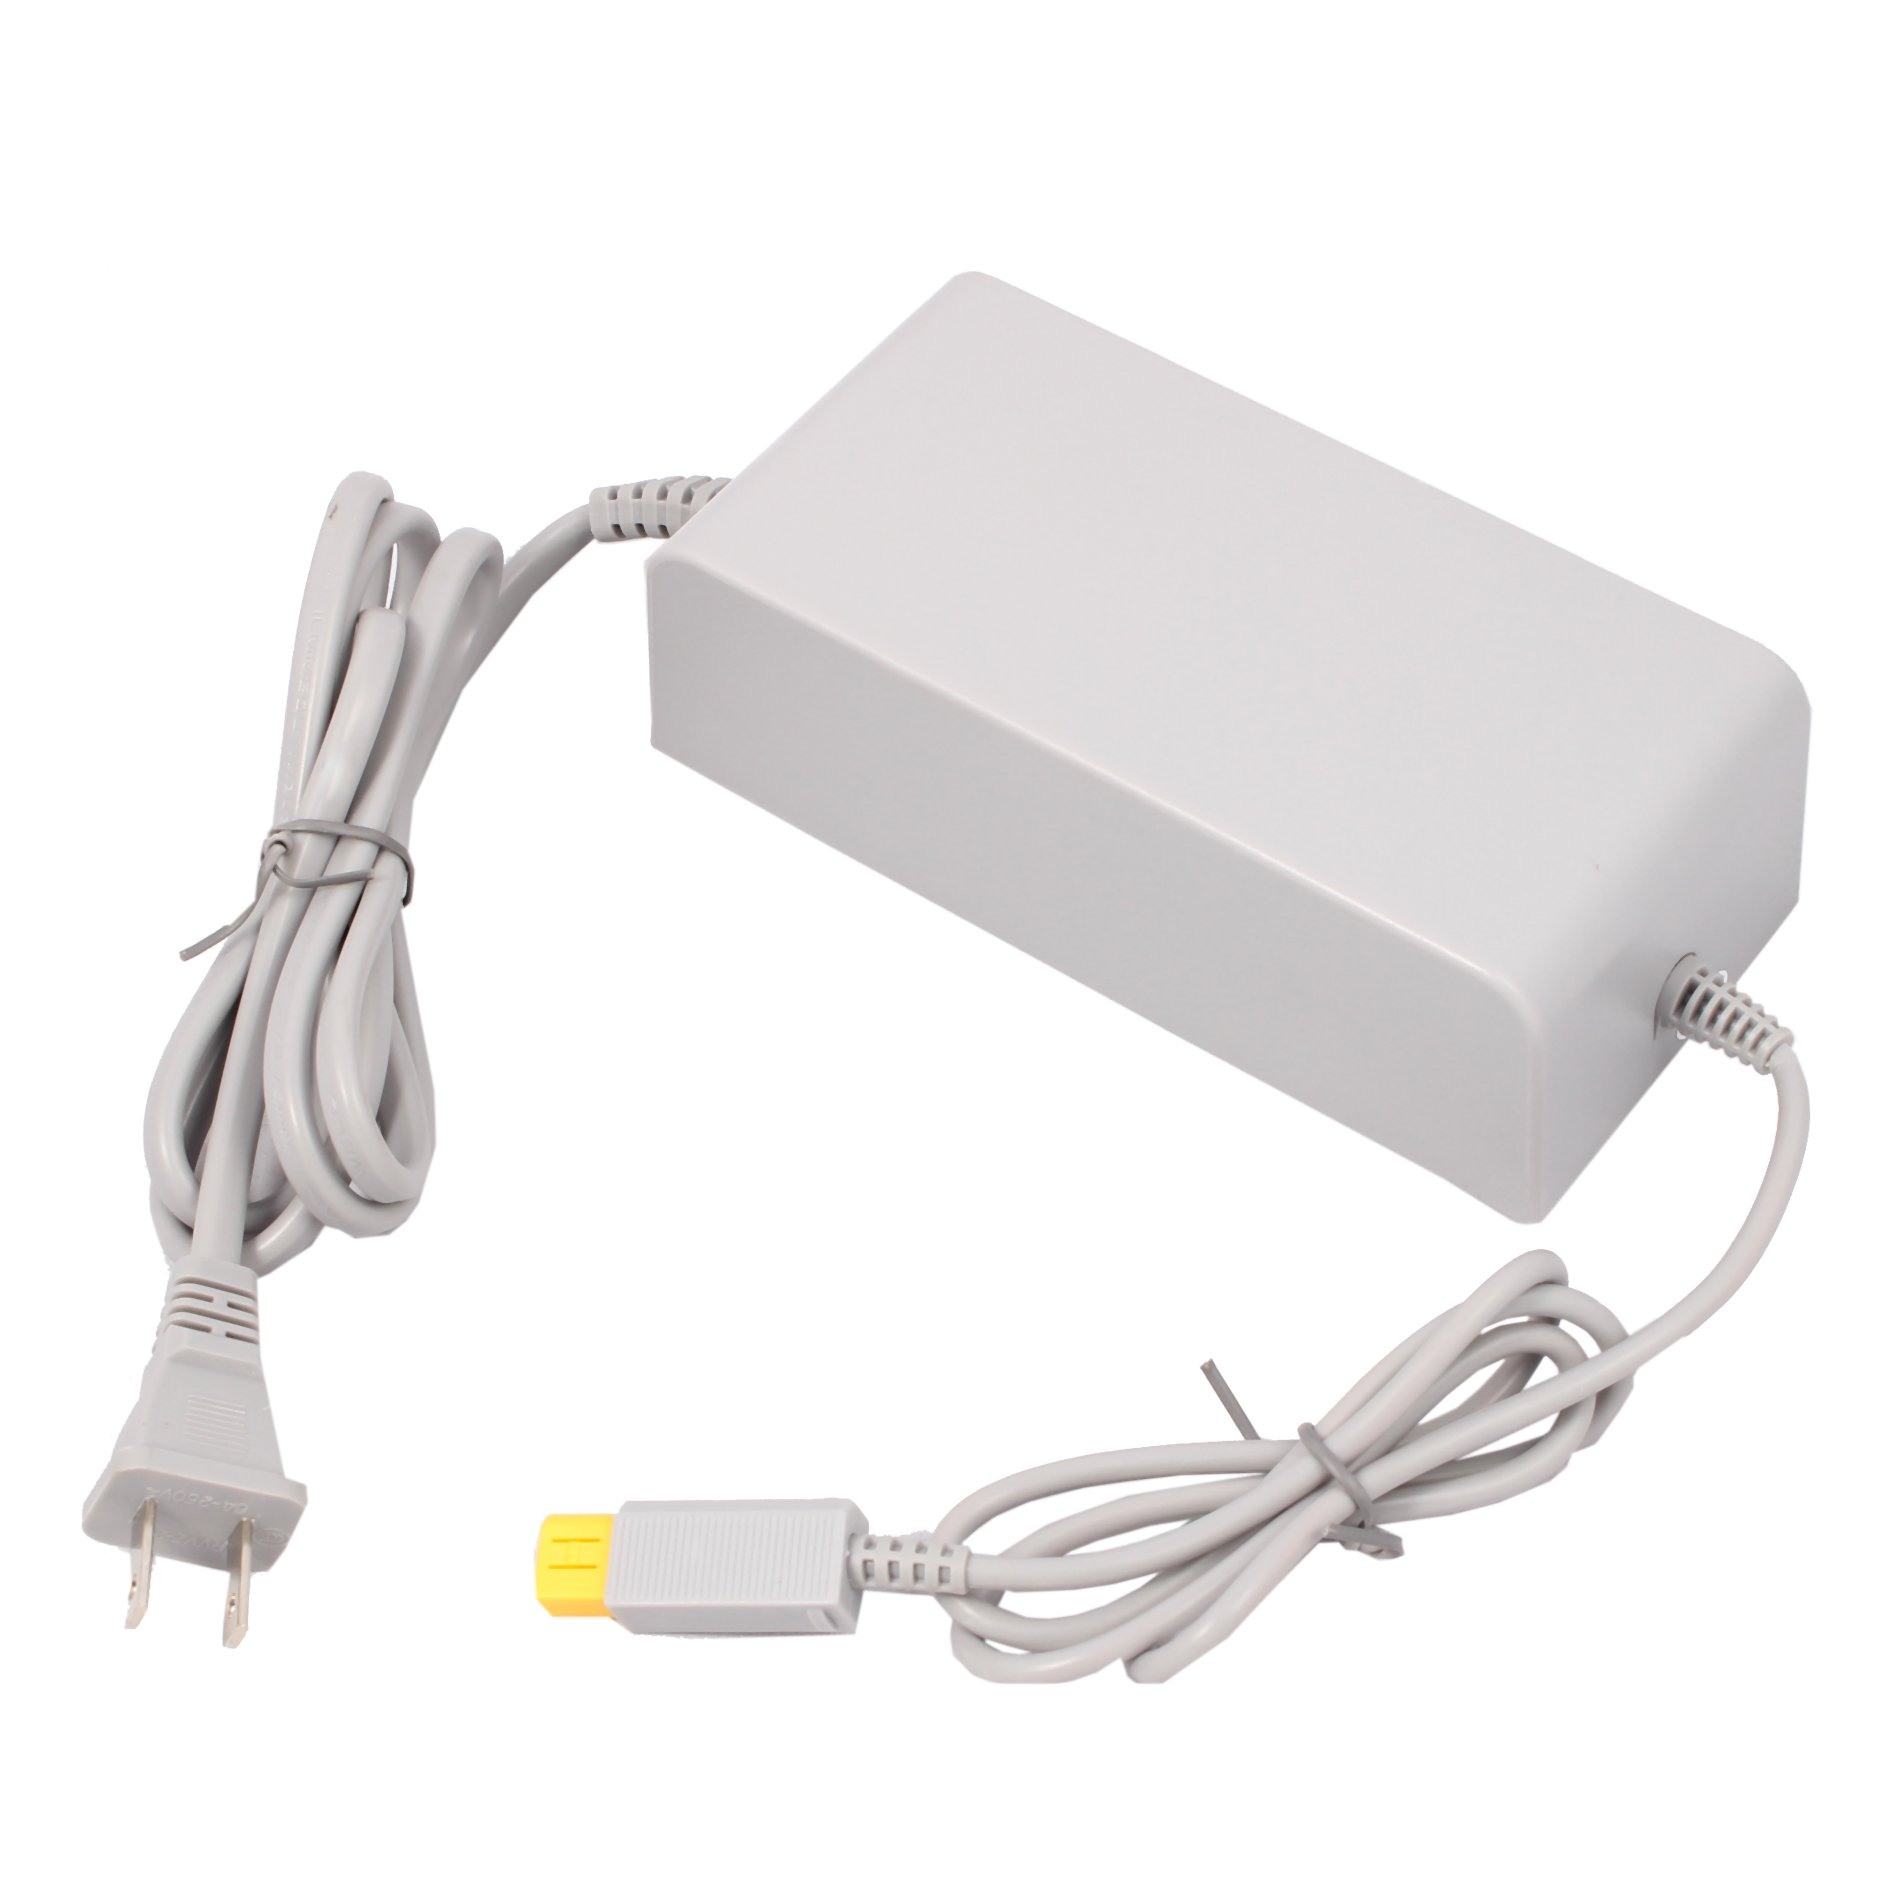 IDS Home Power Supply Universal 100-240V AC Adapter for Wii U Console US Plug